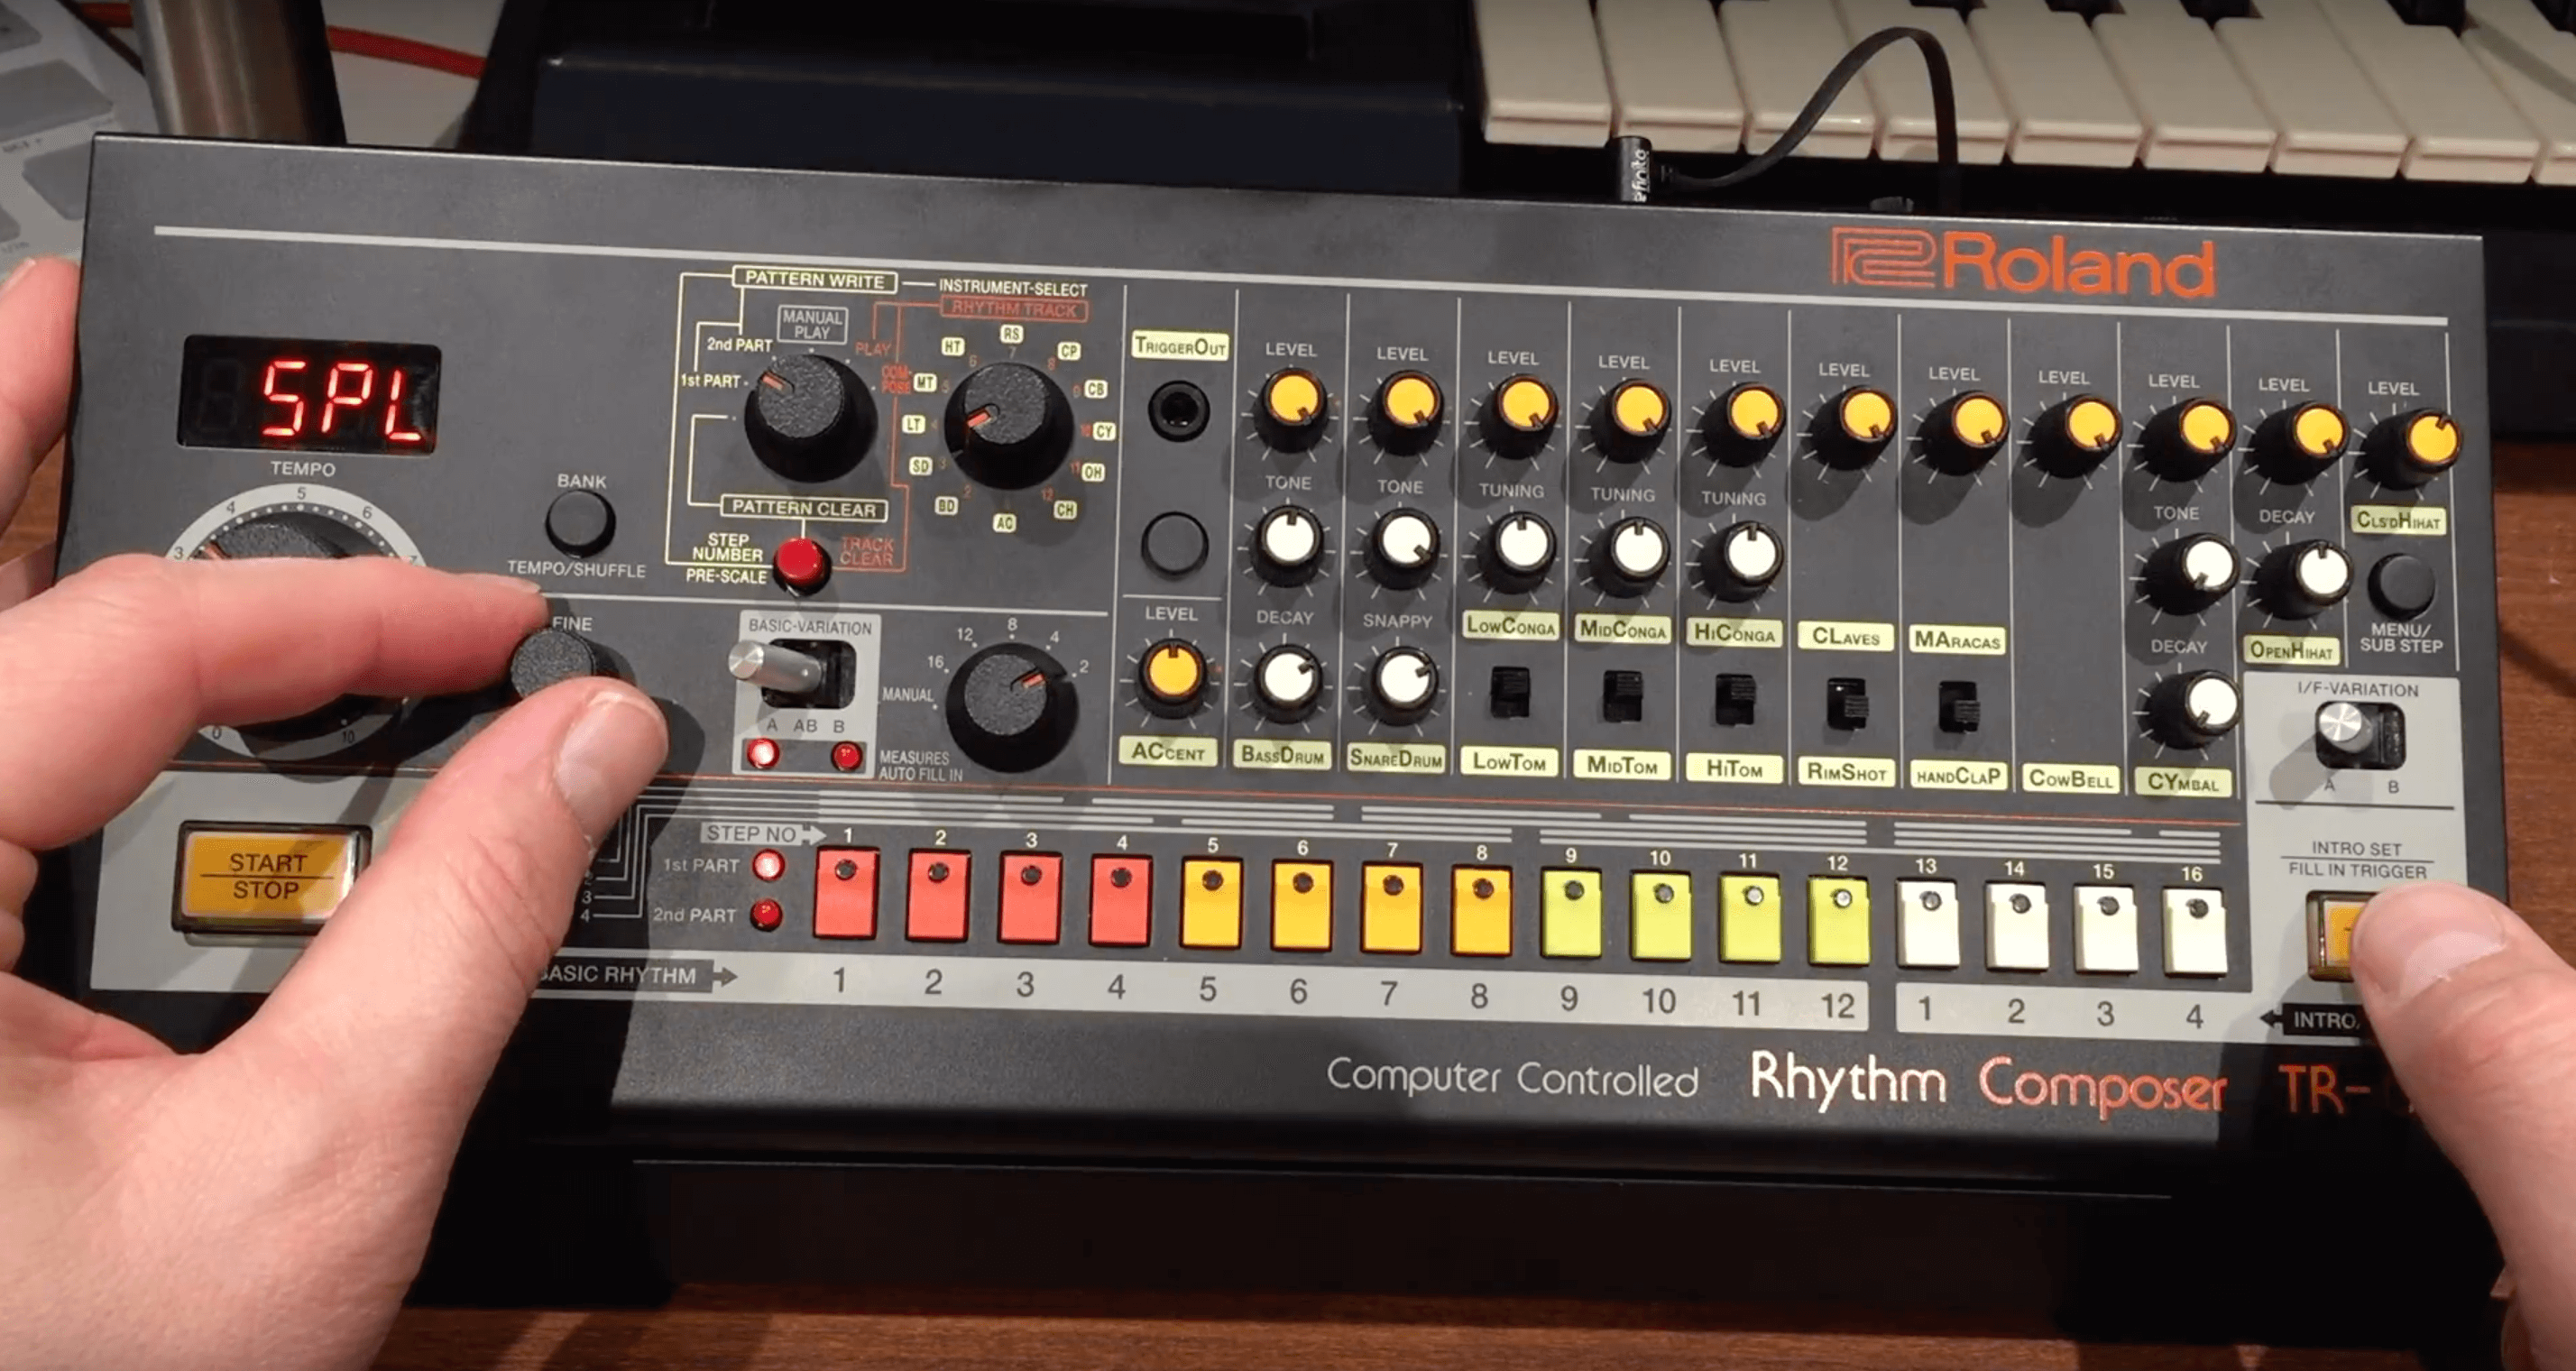 Roland TR-08 review, hidden features and missing manual